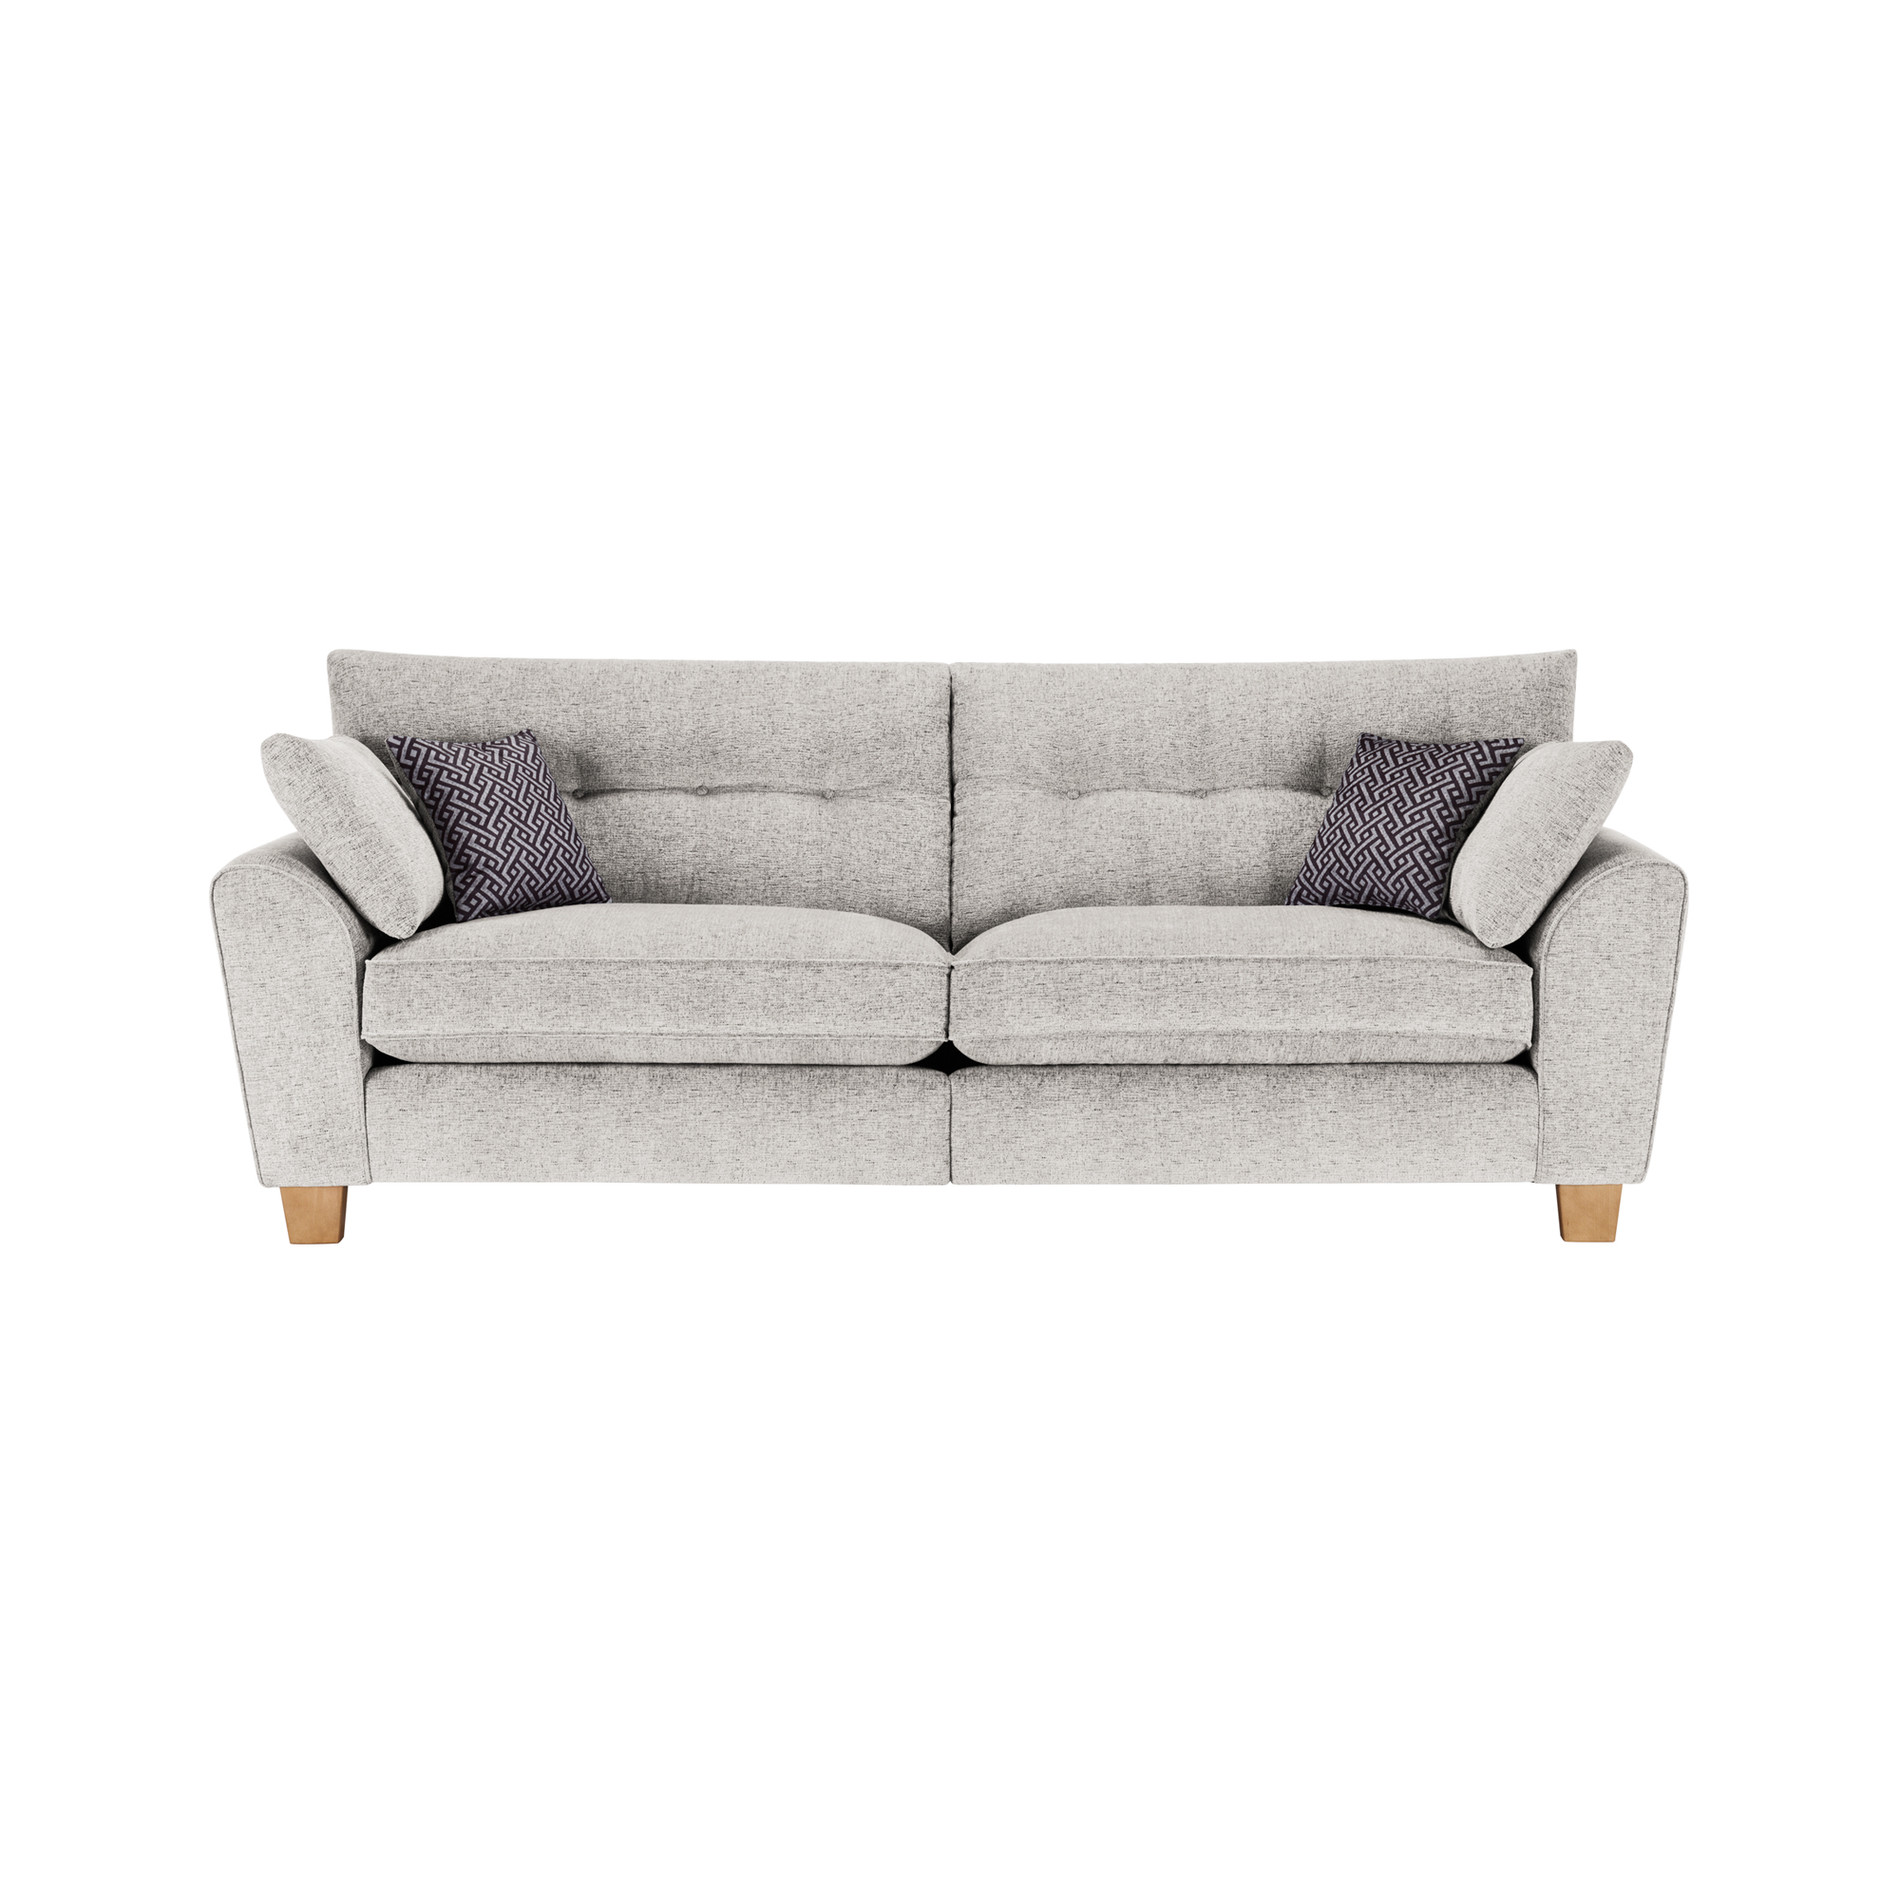 Brooke 4 Seater Sofa in Cream Grey Scatters